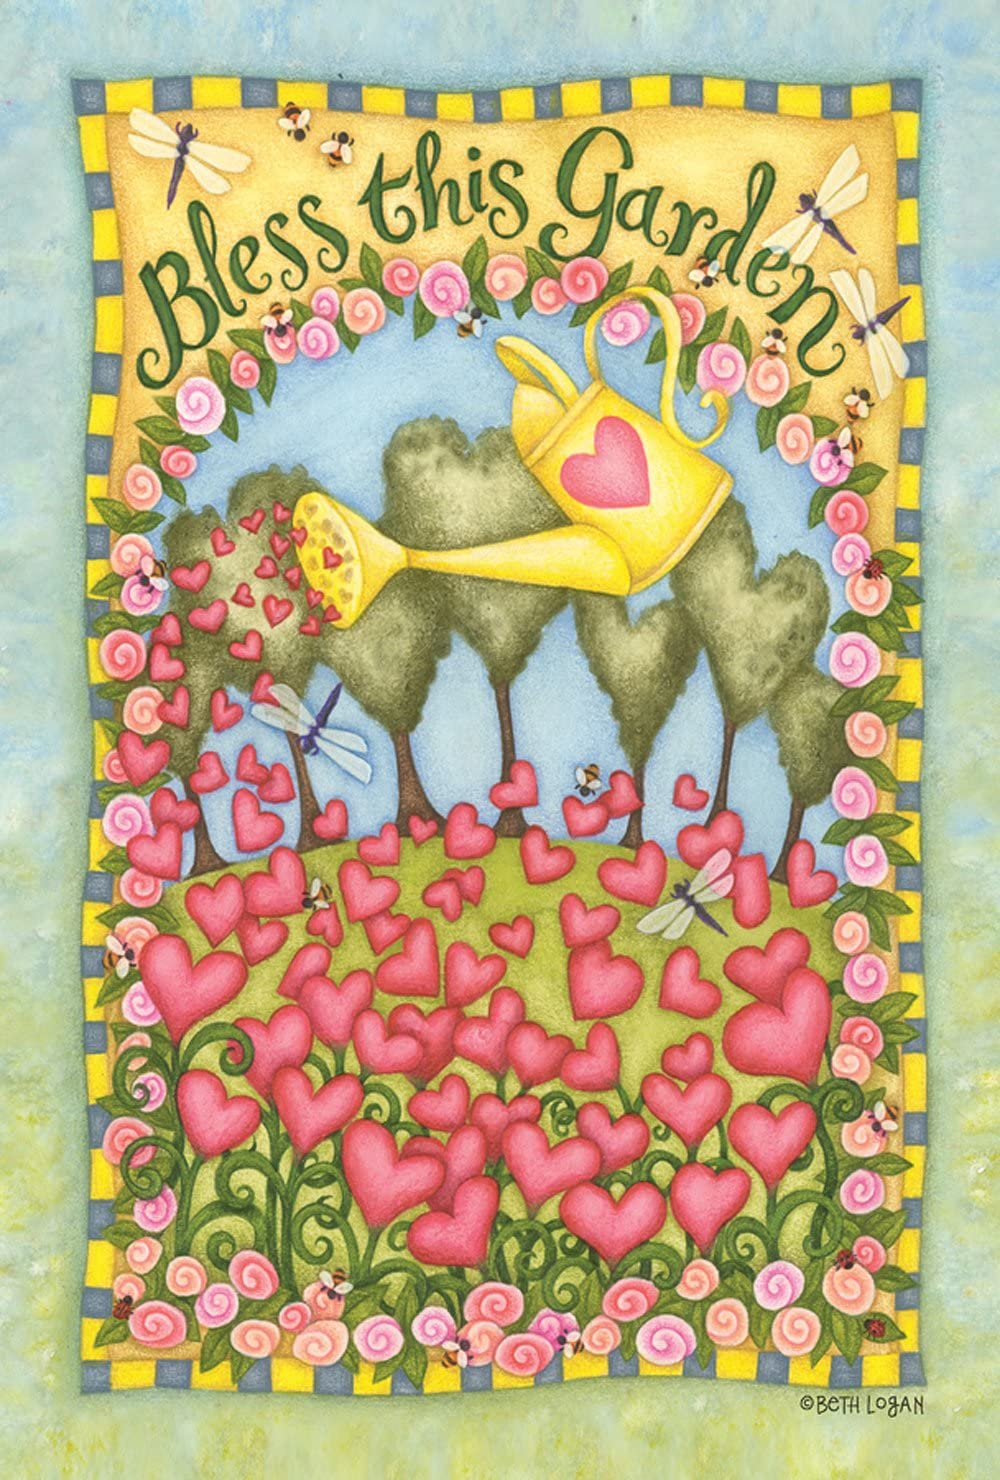 Toland Home Garden Bless This Garden 12.5 x 18 Inch Decorative Cute Spring Summer Heart Flower Garden Flag